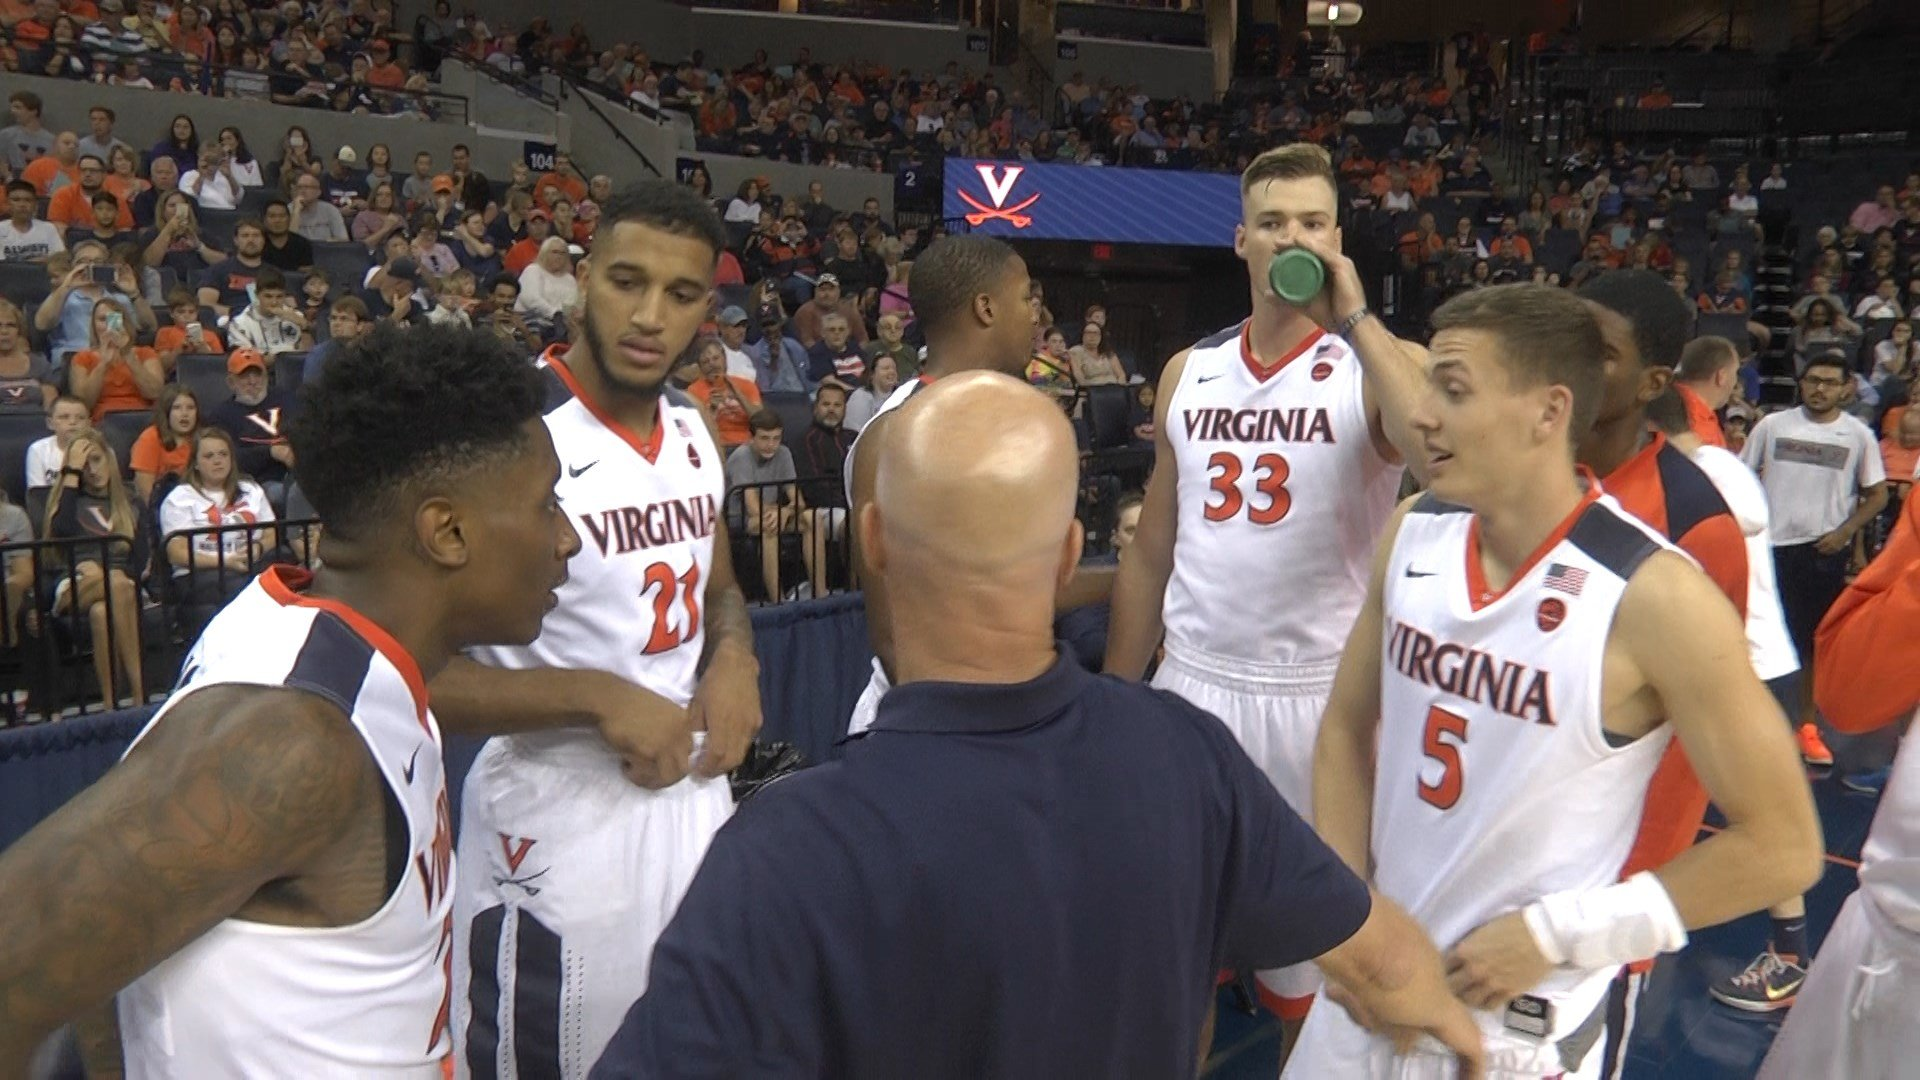 UVa basketball is ranked #18